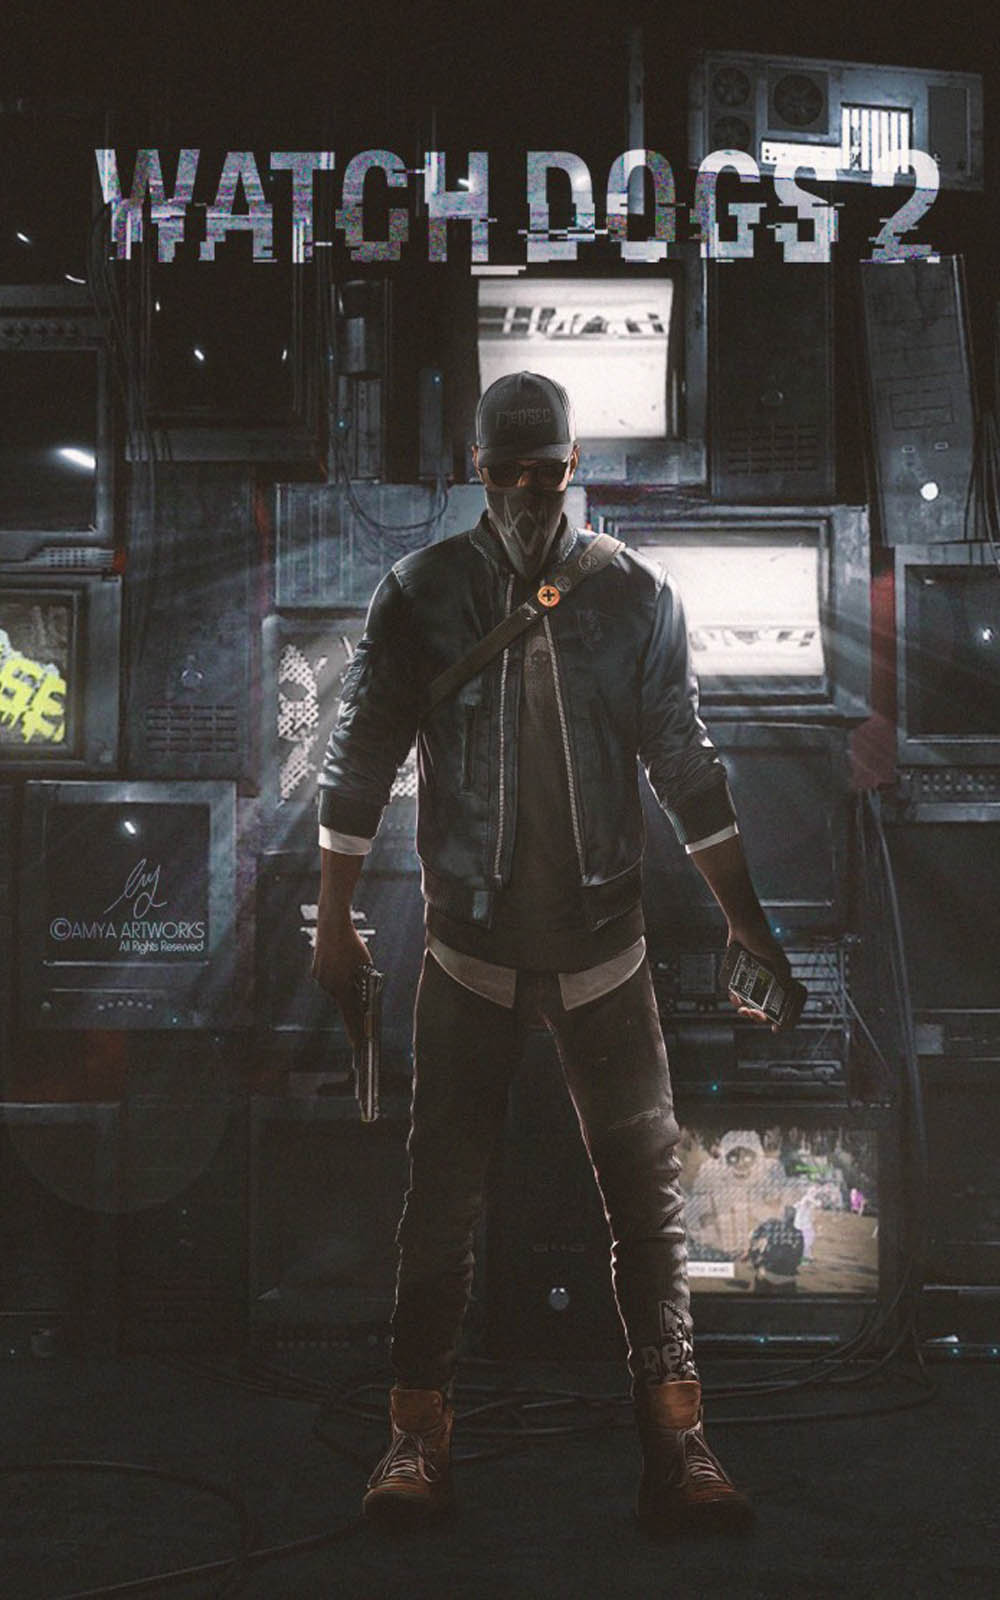 Watch Dogs 2 Game Free 4k Ultra Hd Mobile Wallpaper